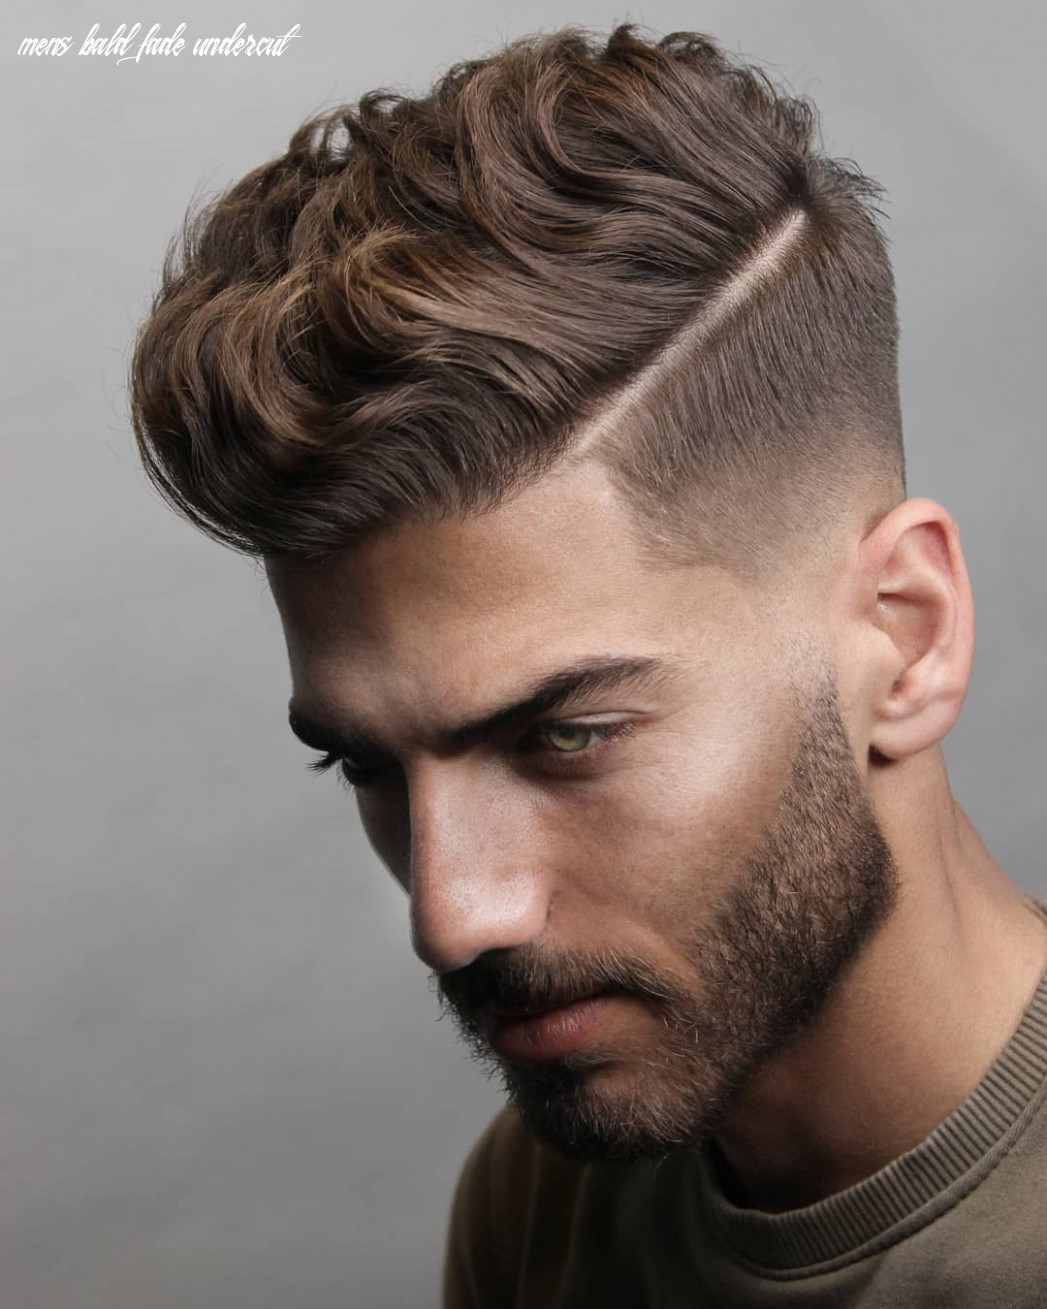 8 short on sides long on top haircuts for men | man haircuts mens bald fade undercut